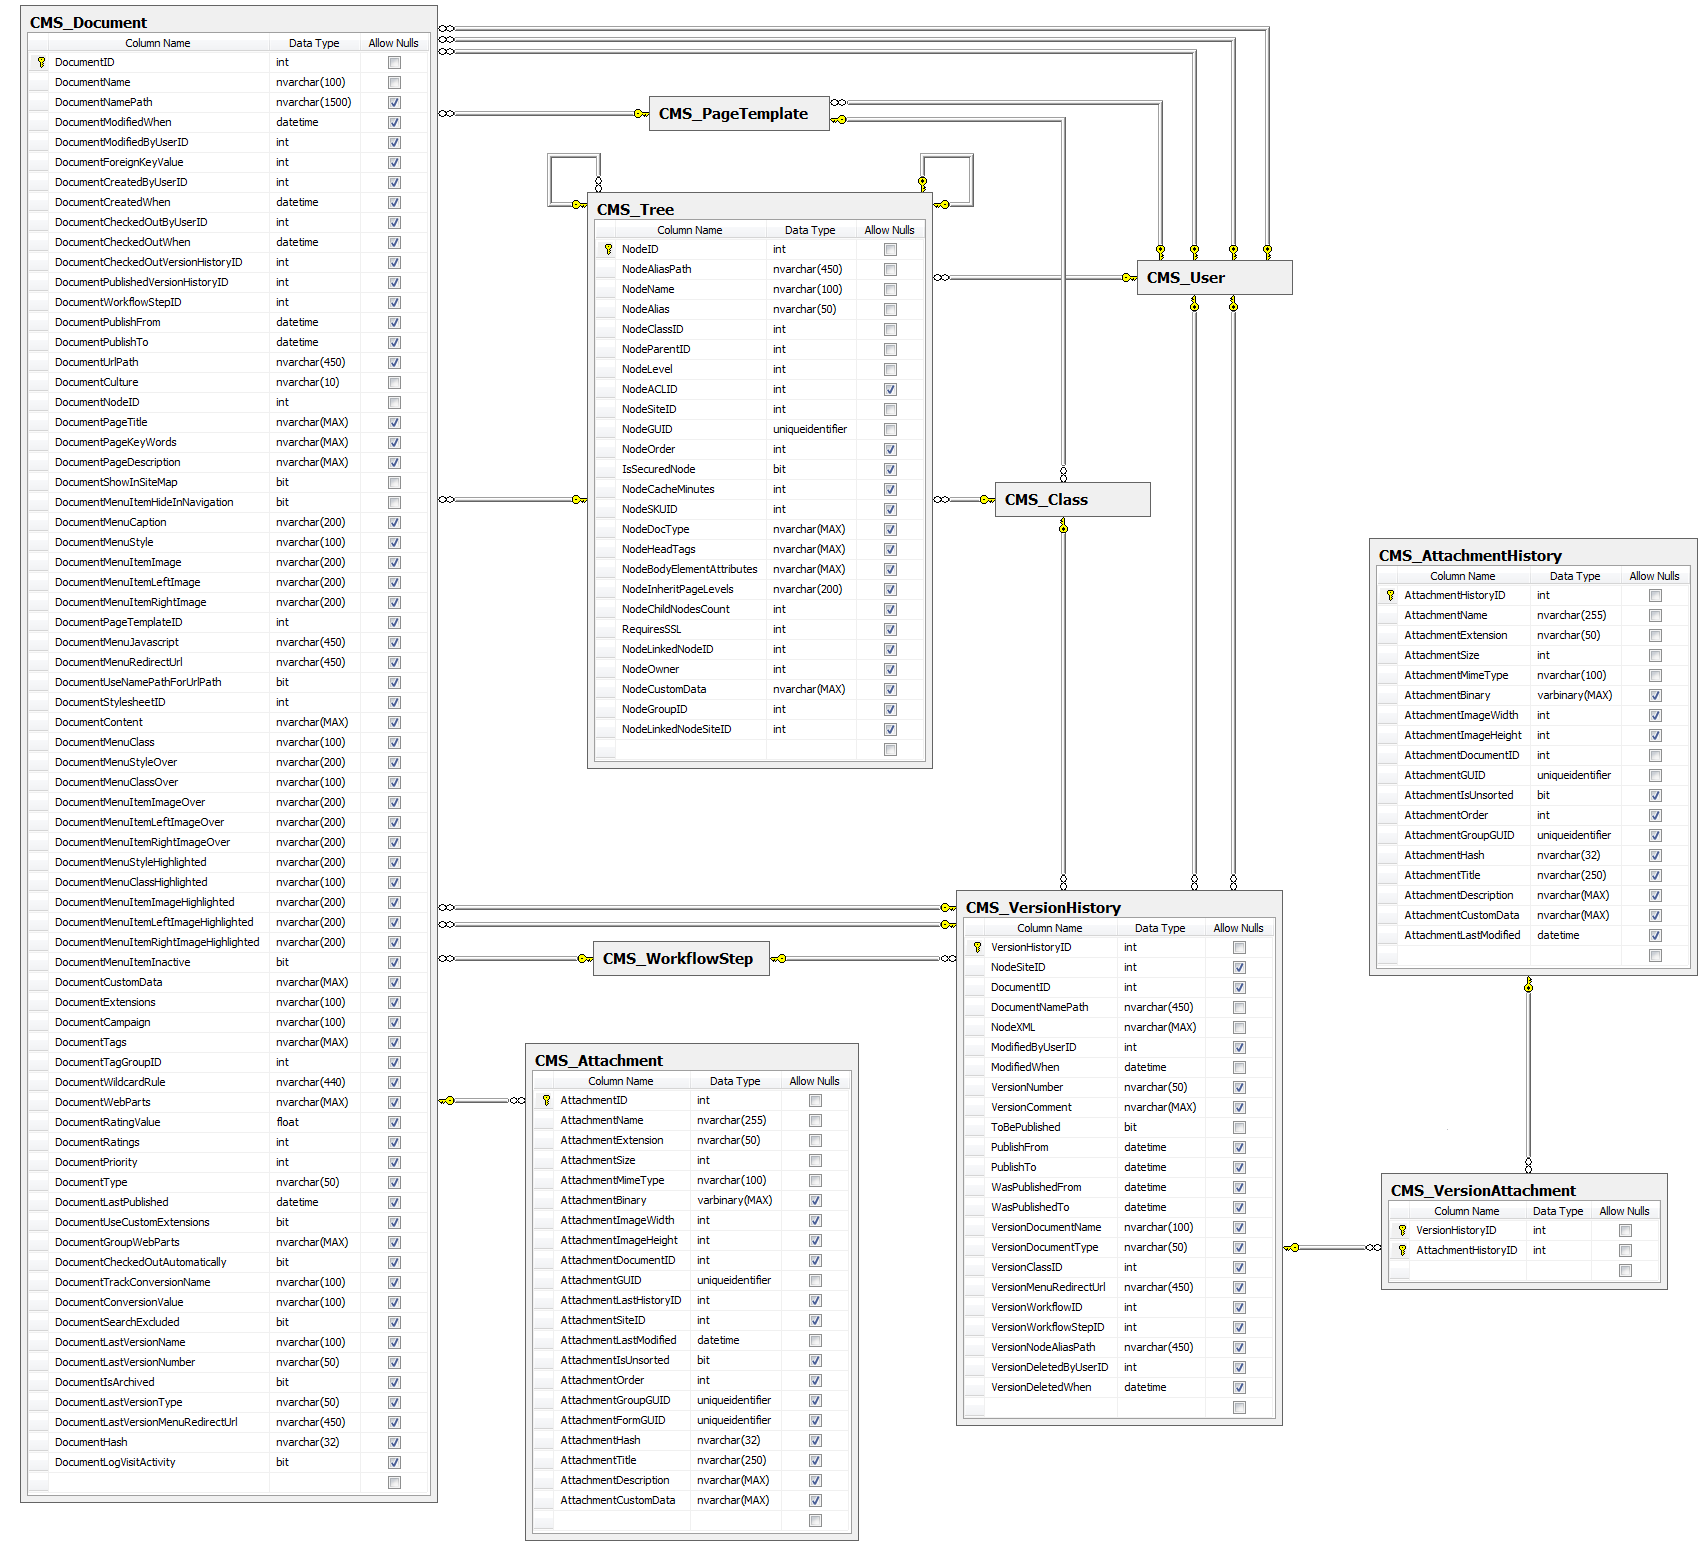 database diagram of all document tables - Multilingual Database Design